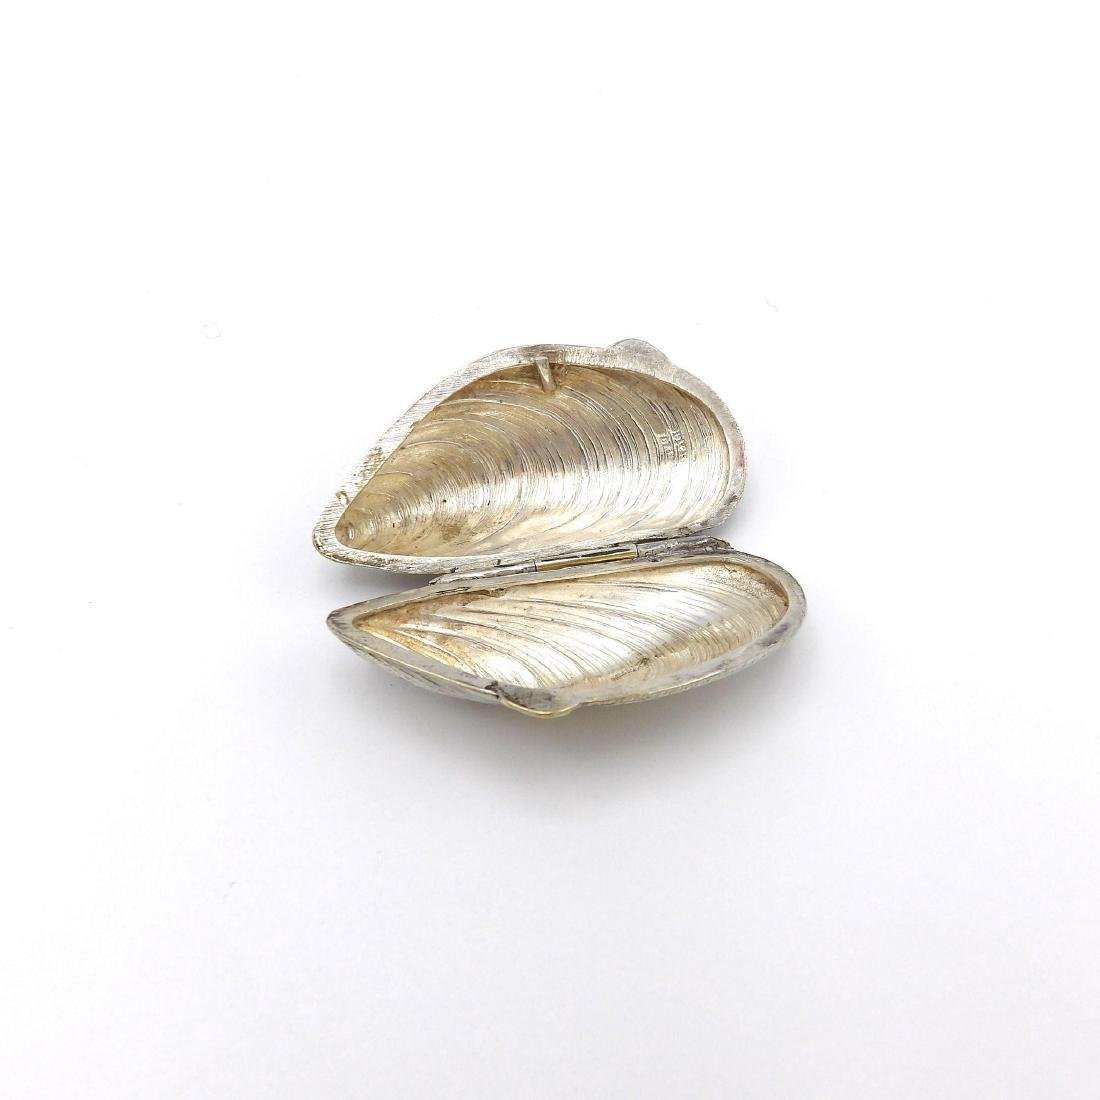 Vintage European Silver Plate Mussel Shell Pill Box - 5